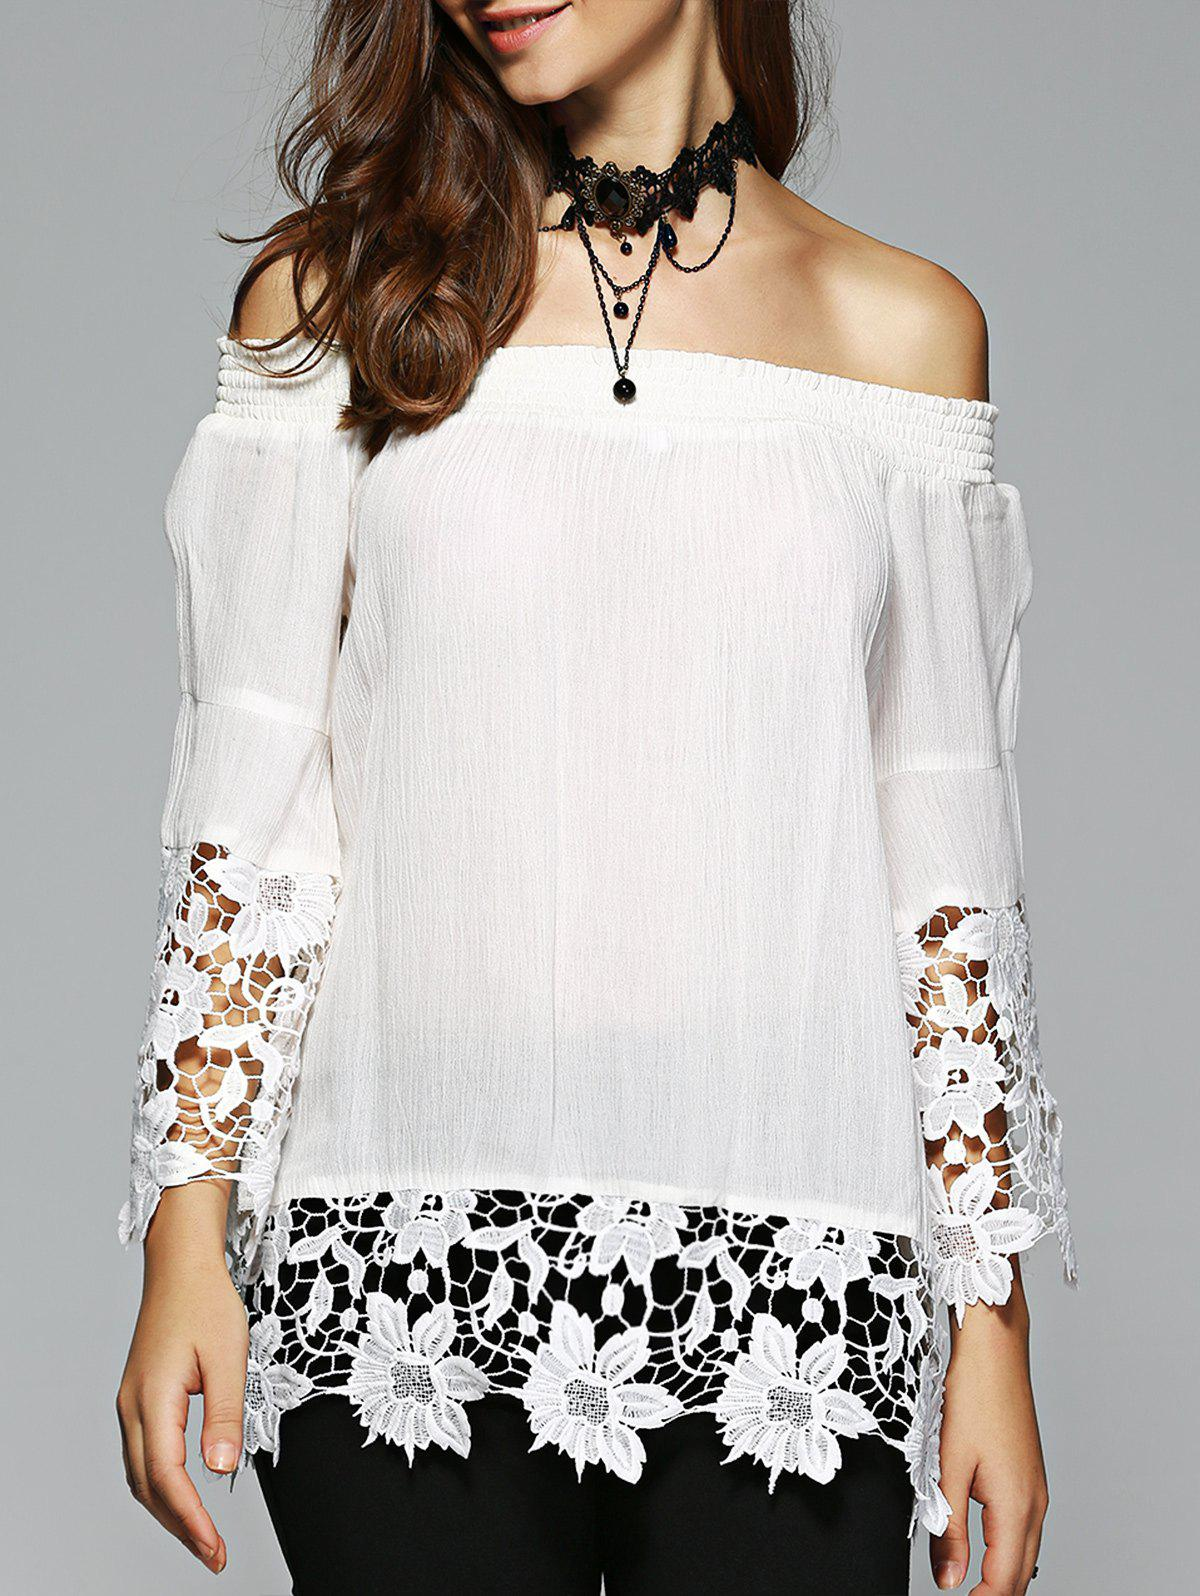 Women's Elegant Off The Shoulder Lace Spliced White Blouse - WHITE XL